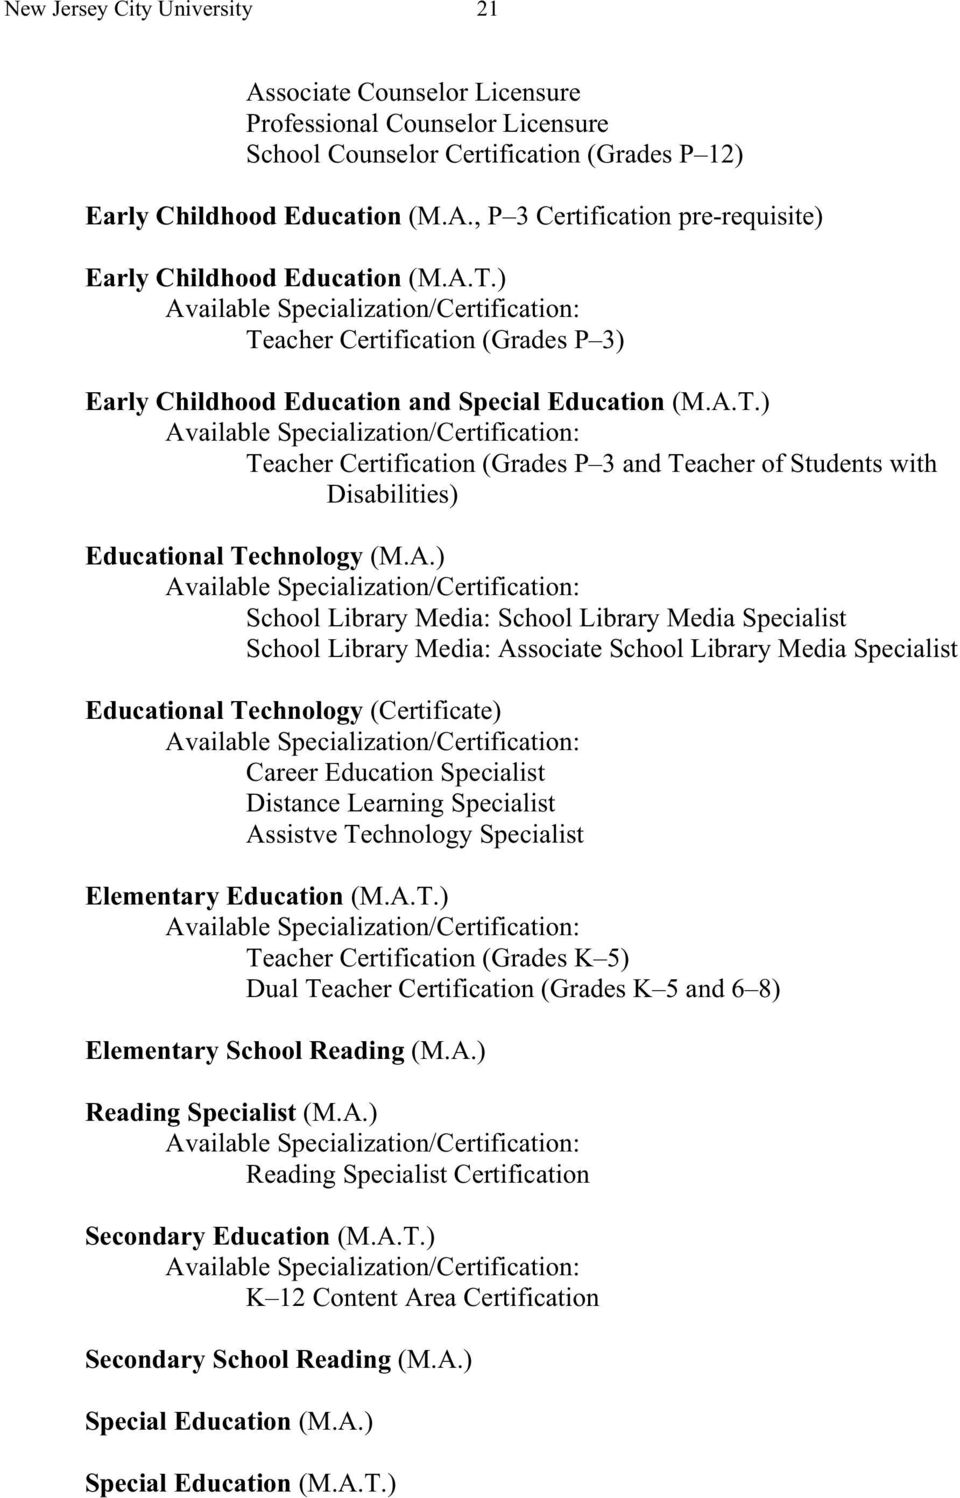 A.) School Library Media: School Library Media Specialist School Library Media: Associate School Library Media Specialist Educational Technology (Certificate) Career Education Specialist Distance